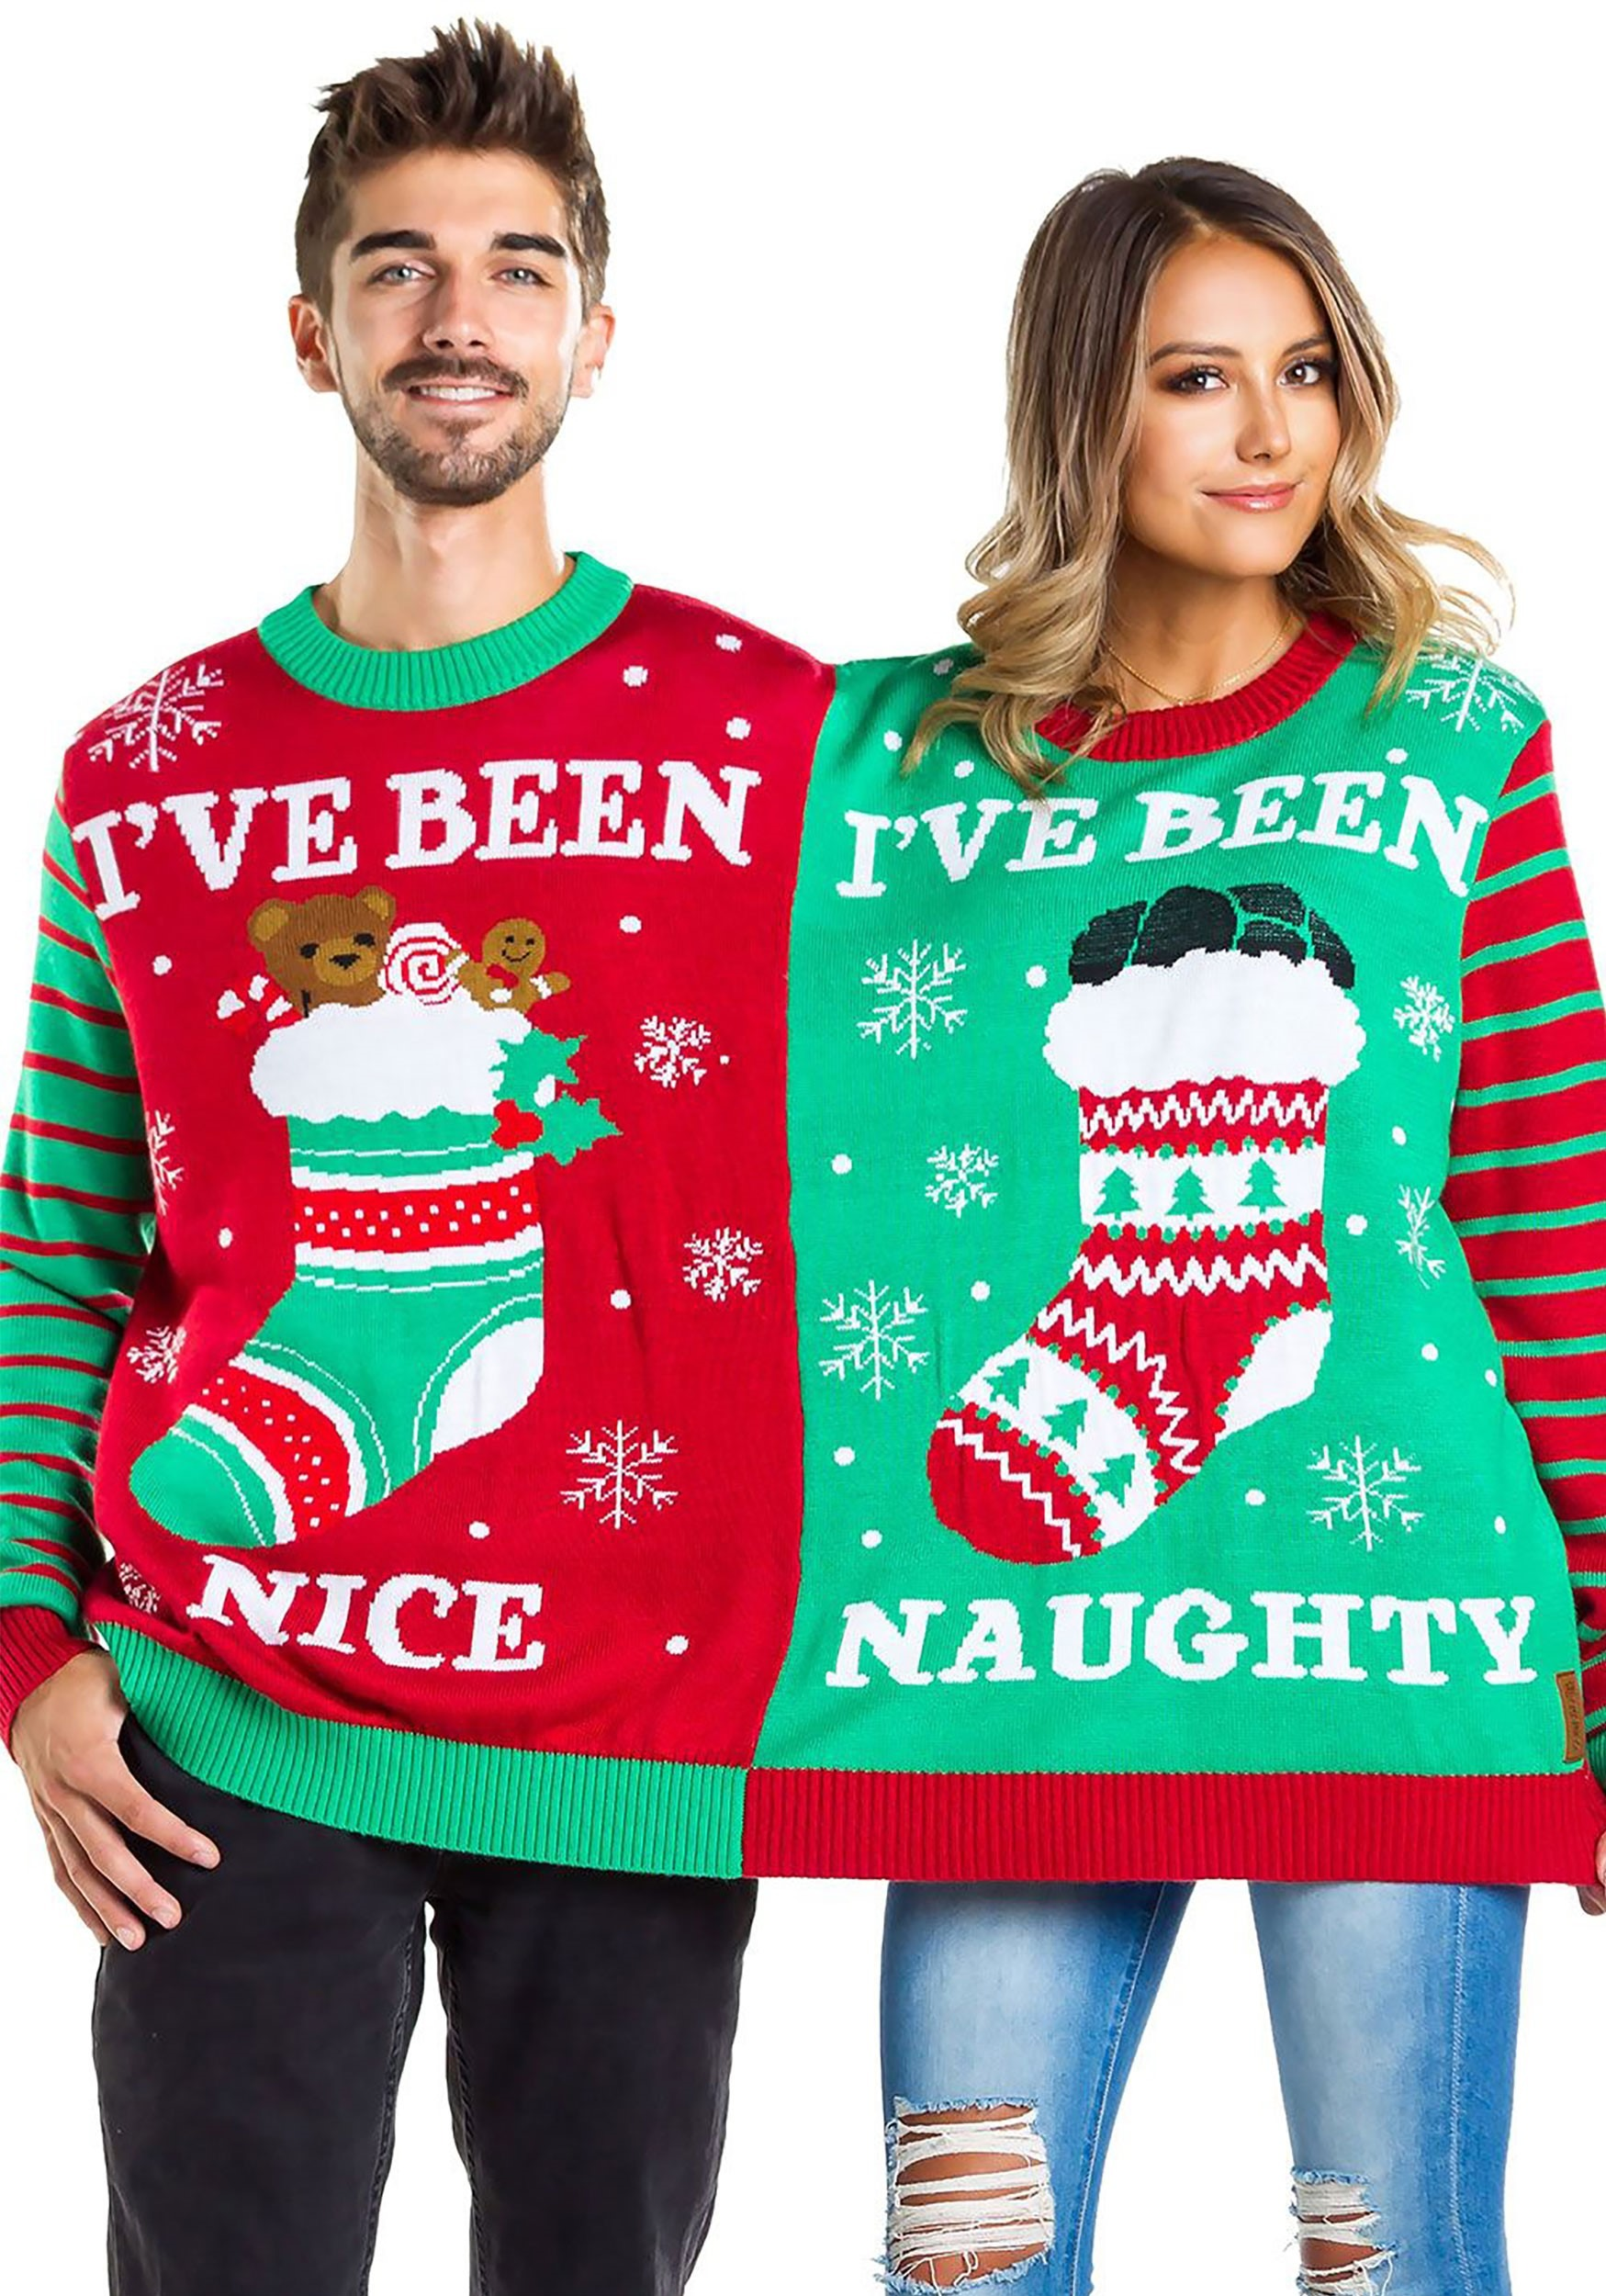 tipsy naughty and nice two person ugly christmas sweater - Ugly Christmas Sweater Elf